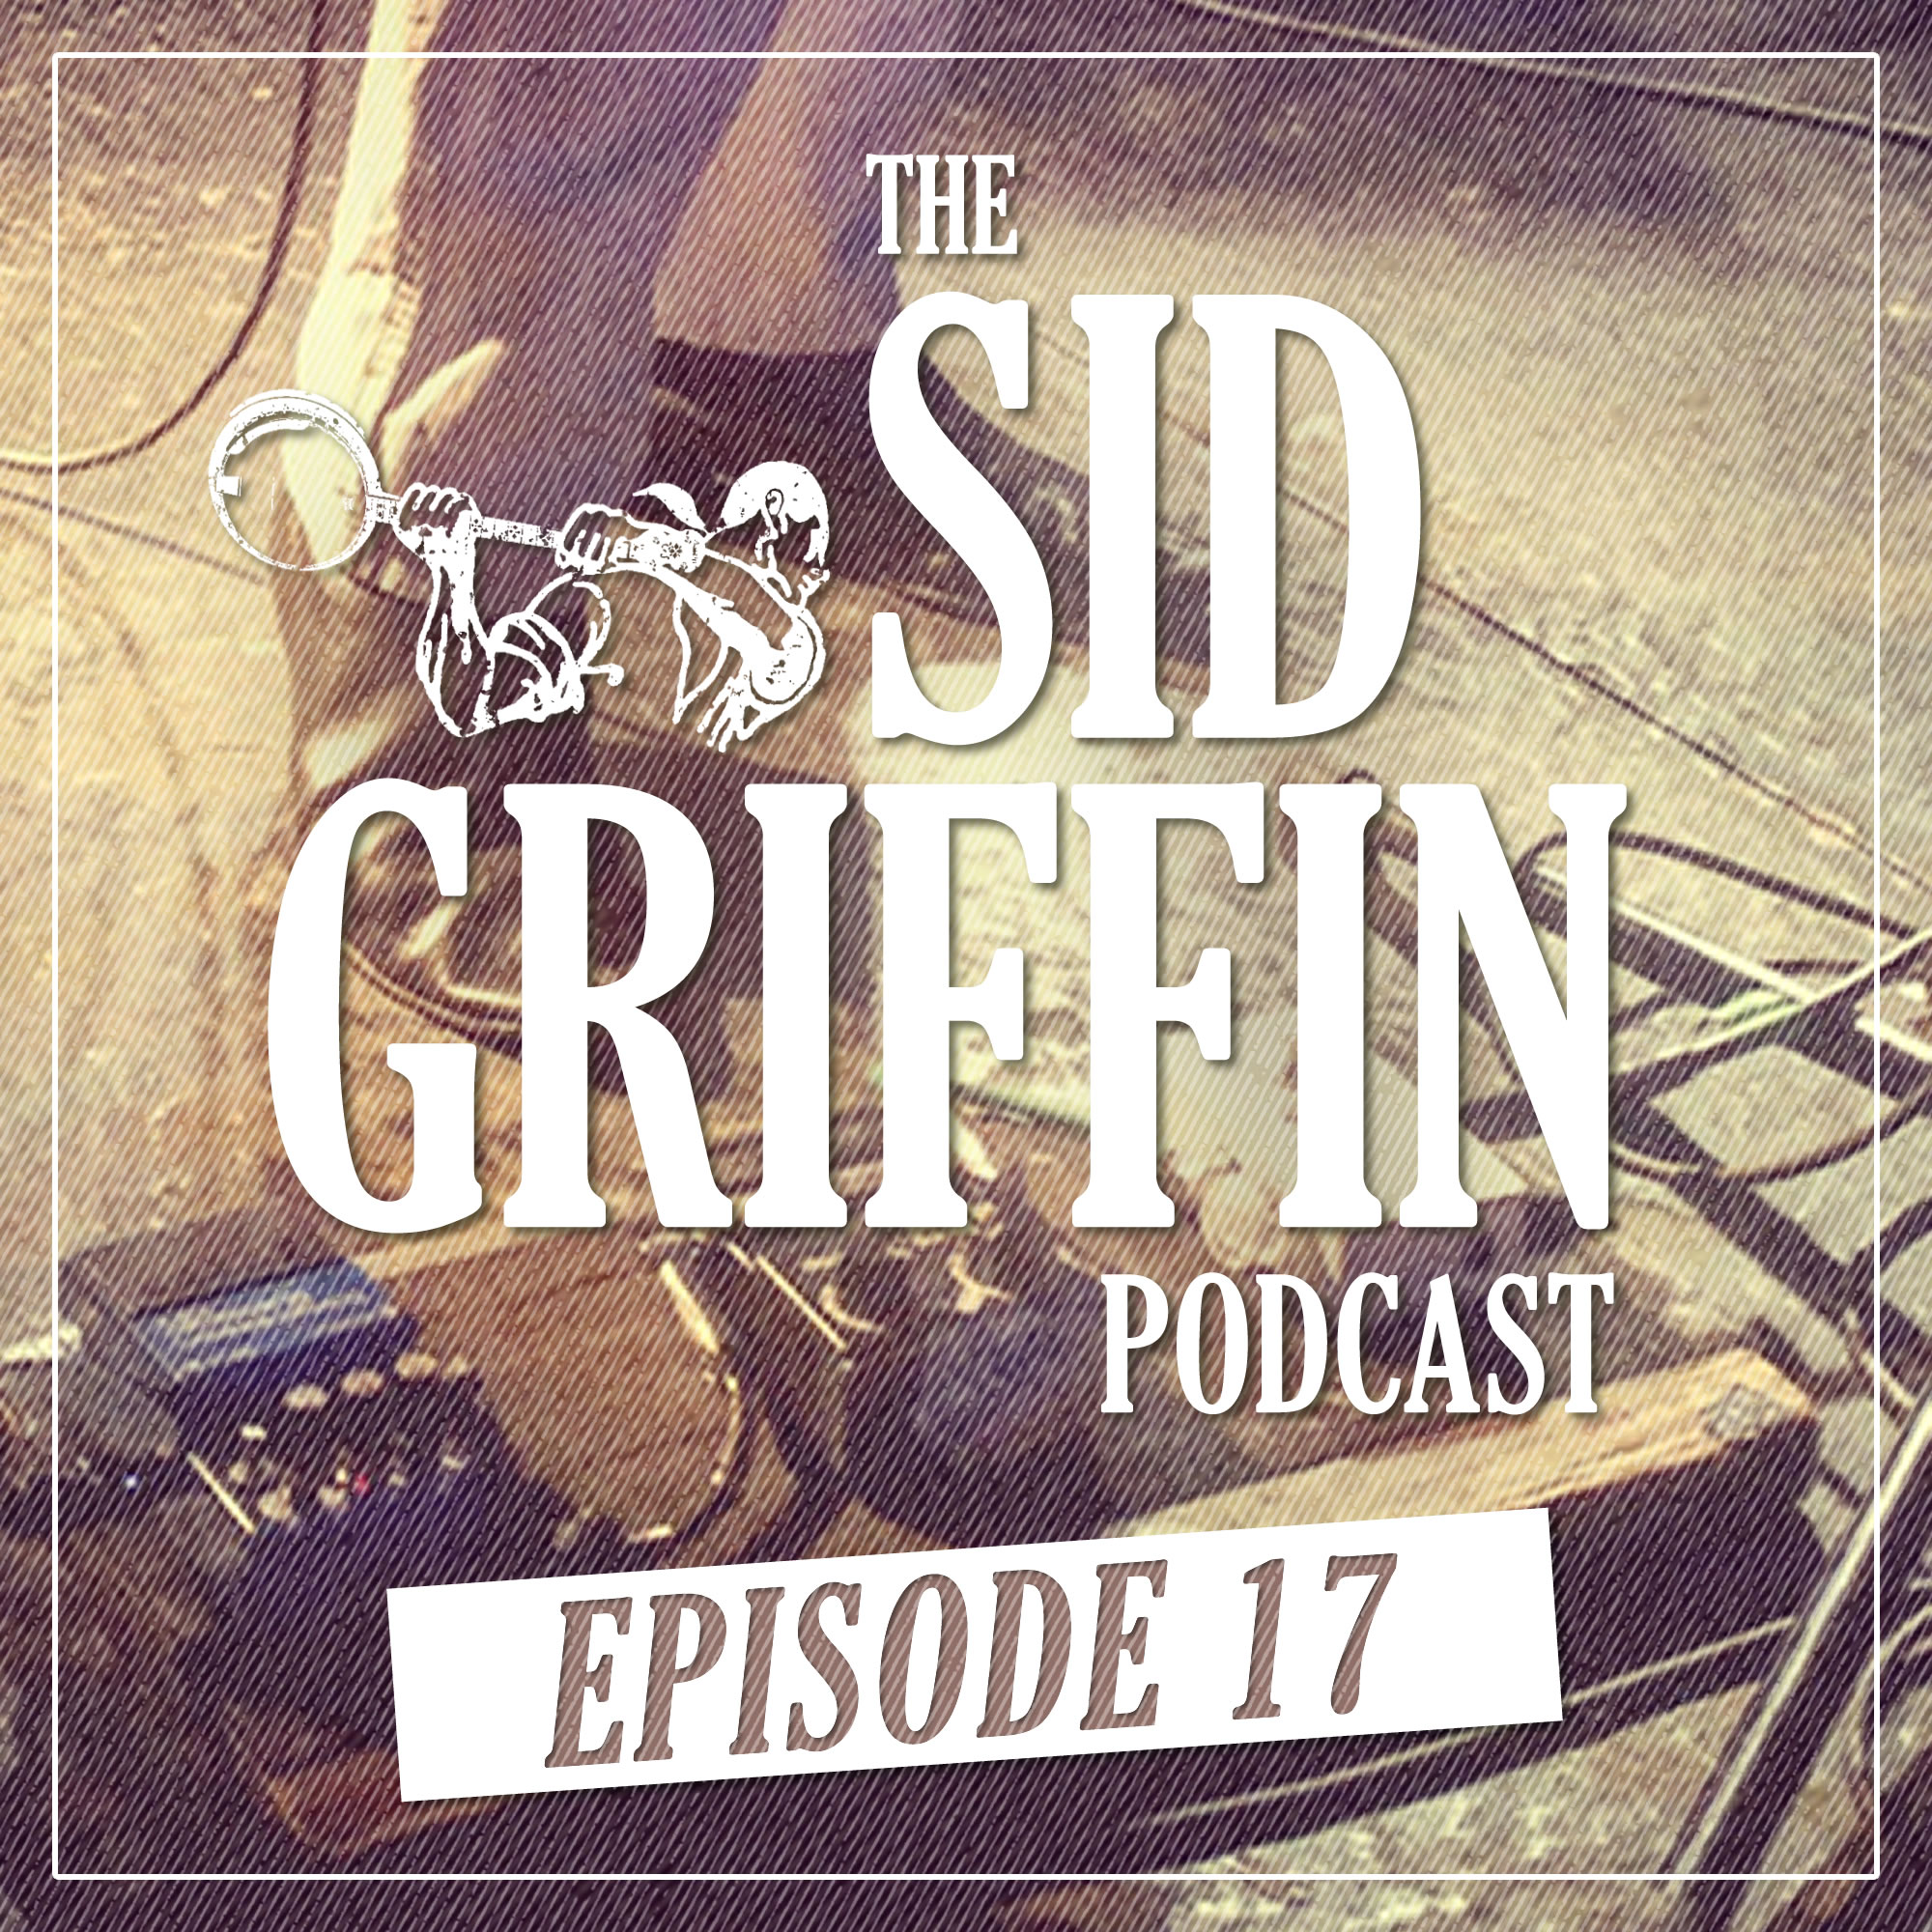 Call All Coal Porters, The Sid Griffin Podcast - No.17